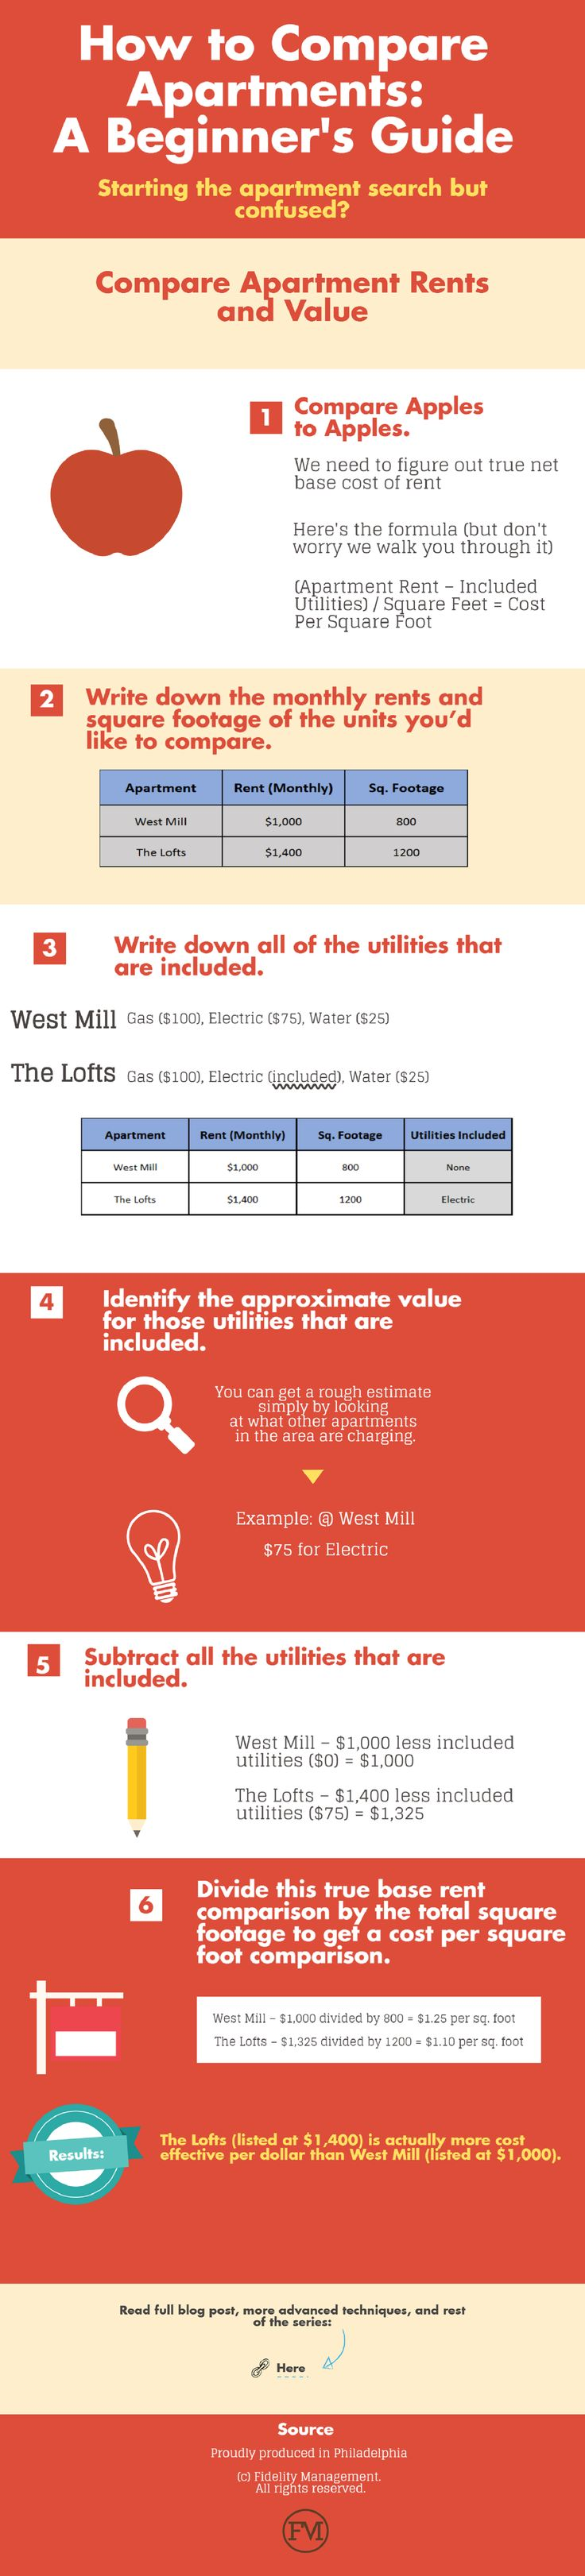 Use this helpful infographic when searching for an affordable apartment to help compare expenses, utilities, as well as monthly rent